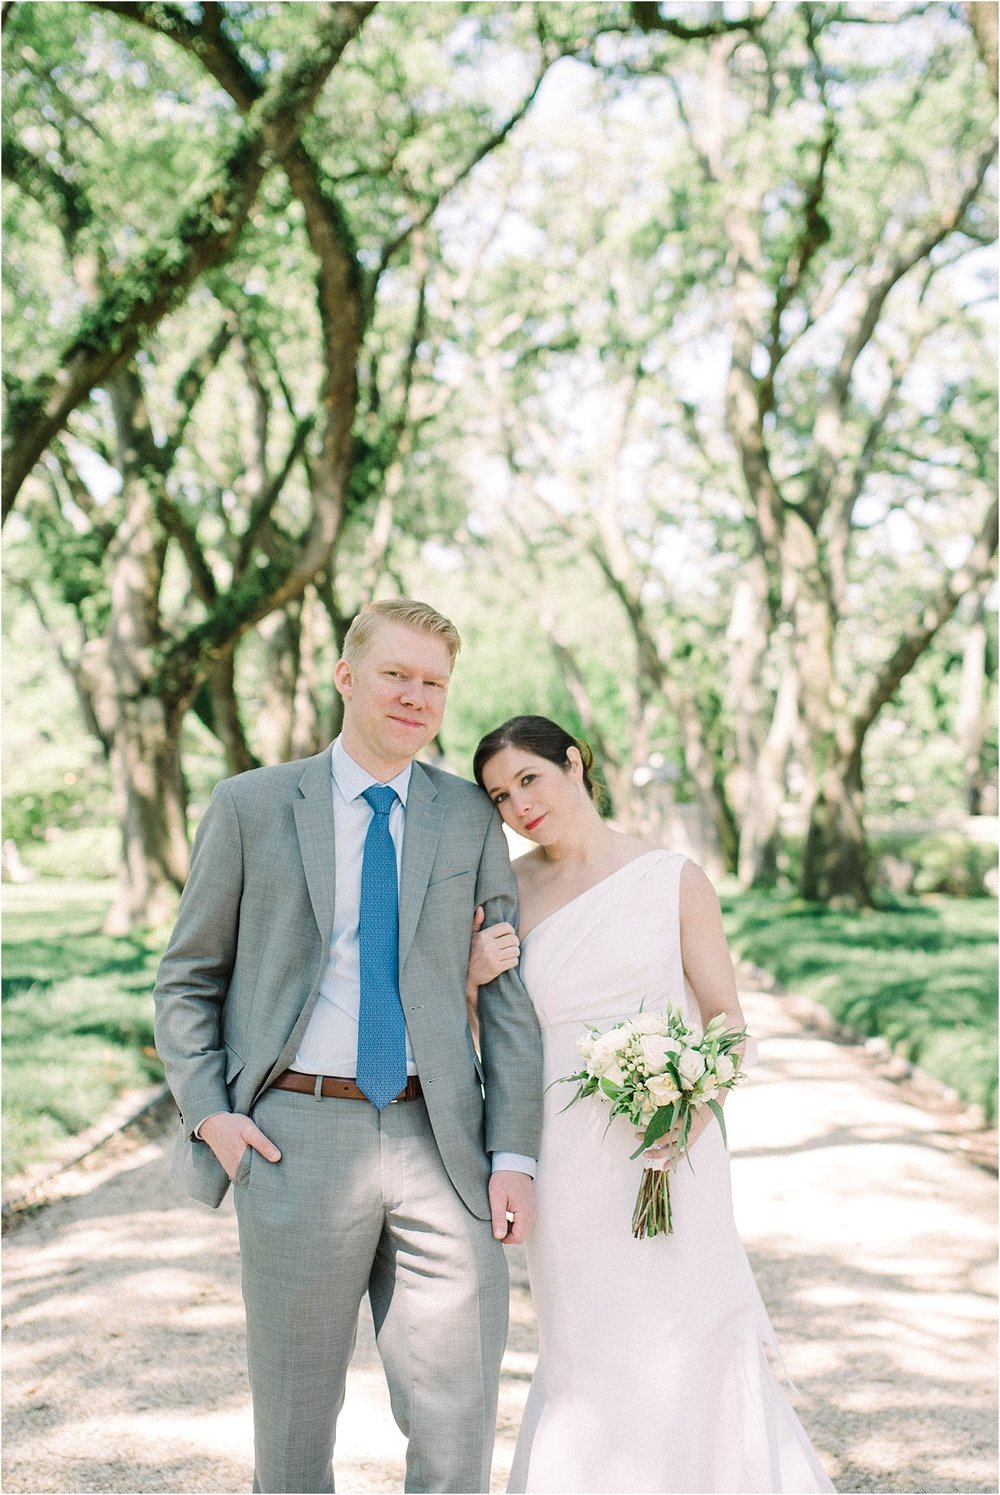 Heather + Scott-Longue-Vue-house-and-gardens-black-tie-wedding-photos_Gabby Chapin_Print_0064_BLOG.jpg